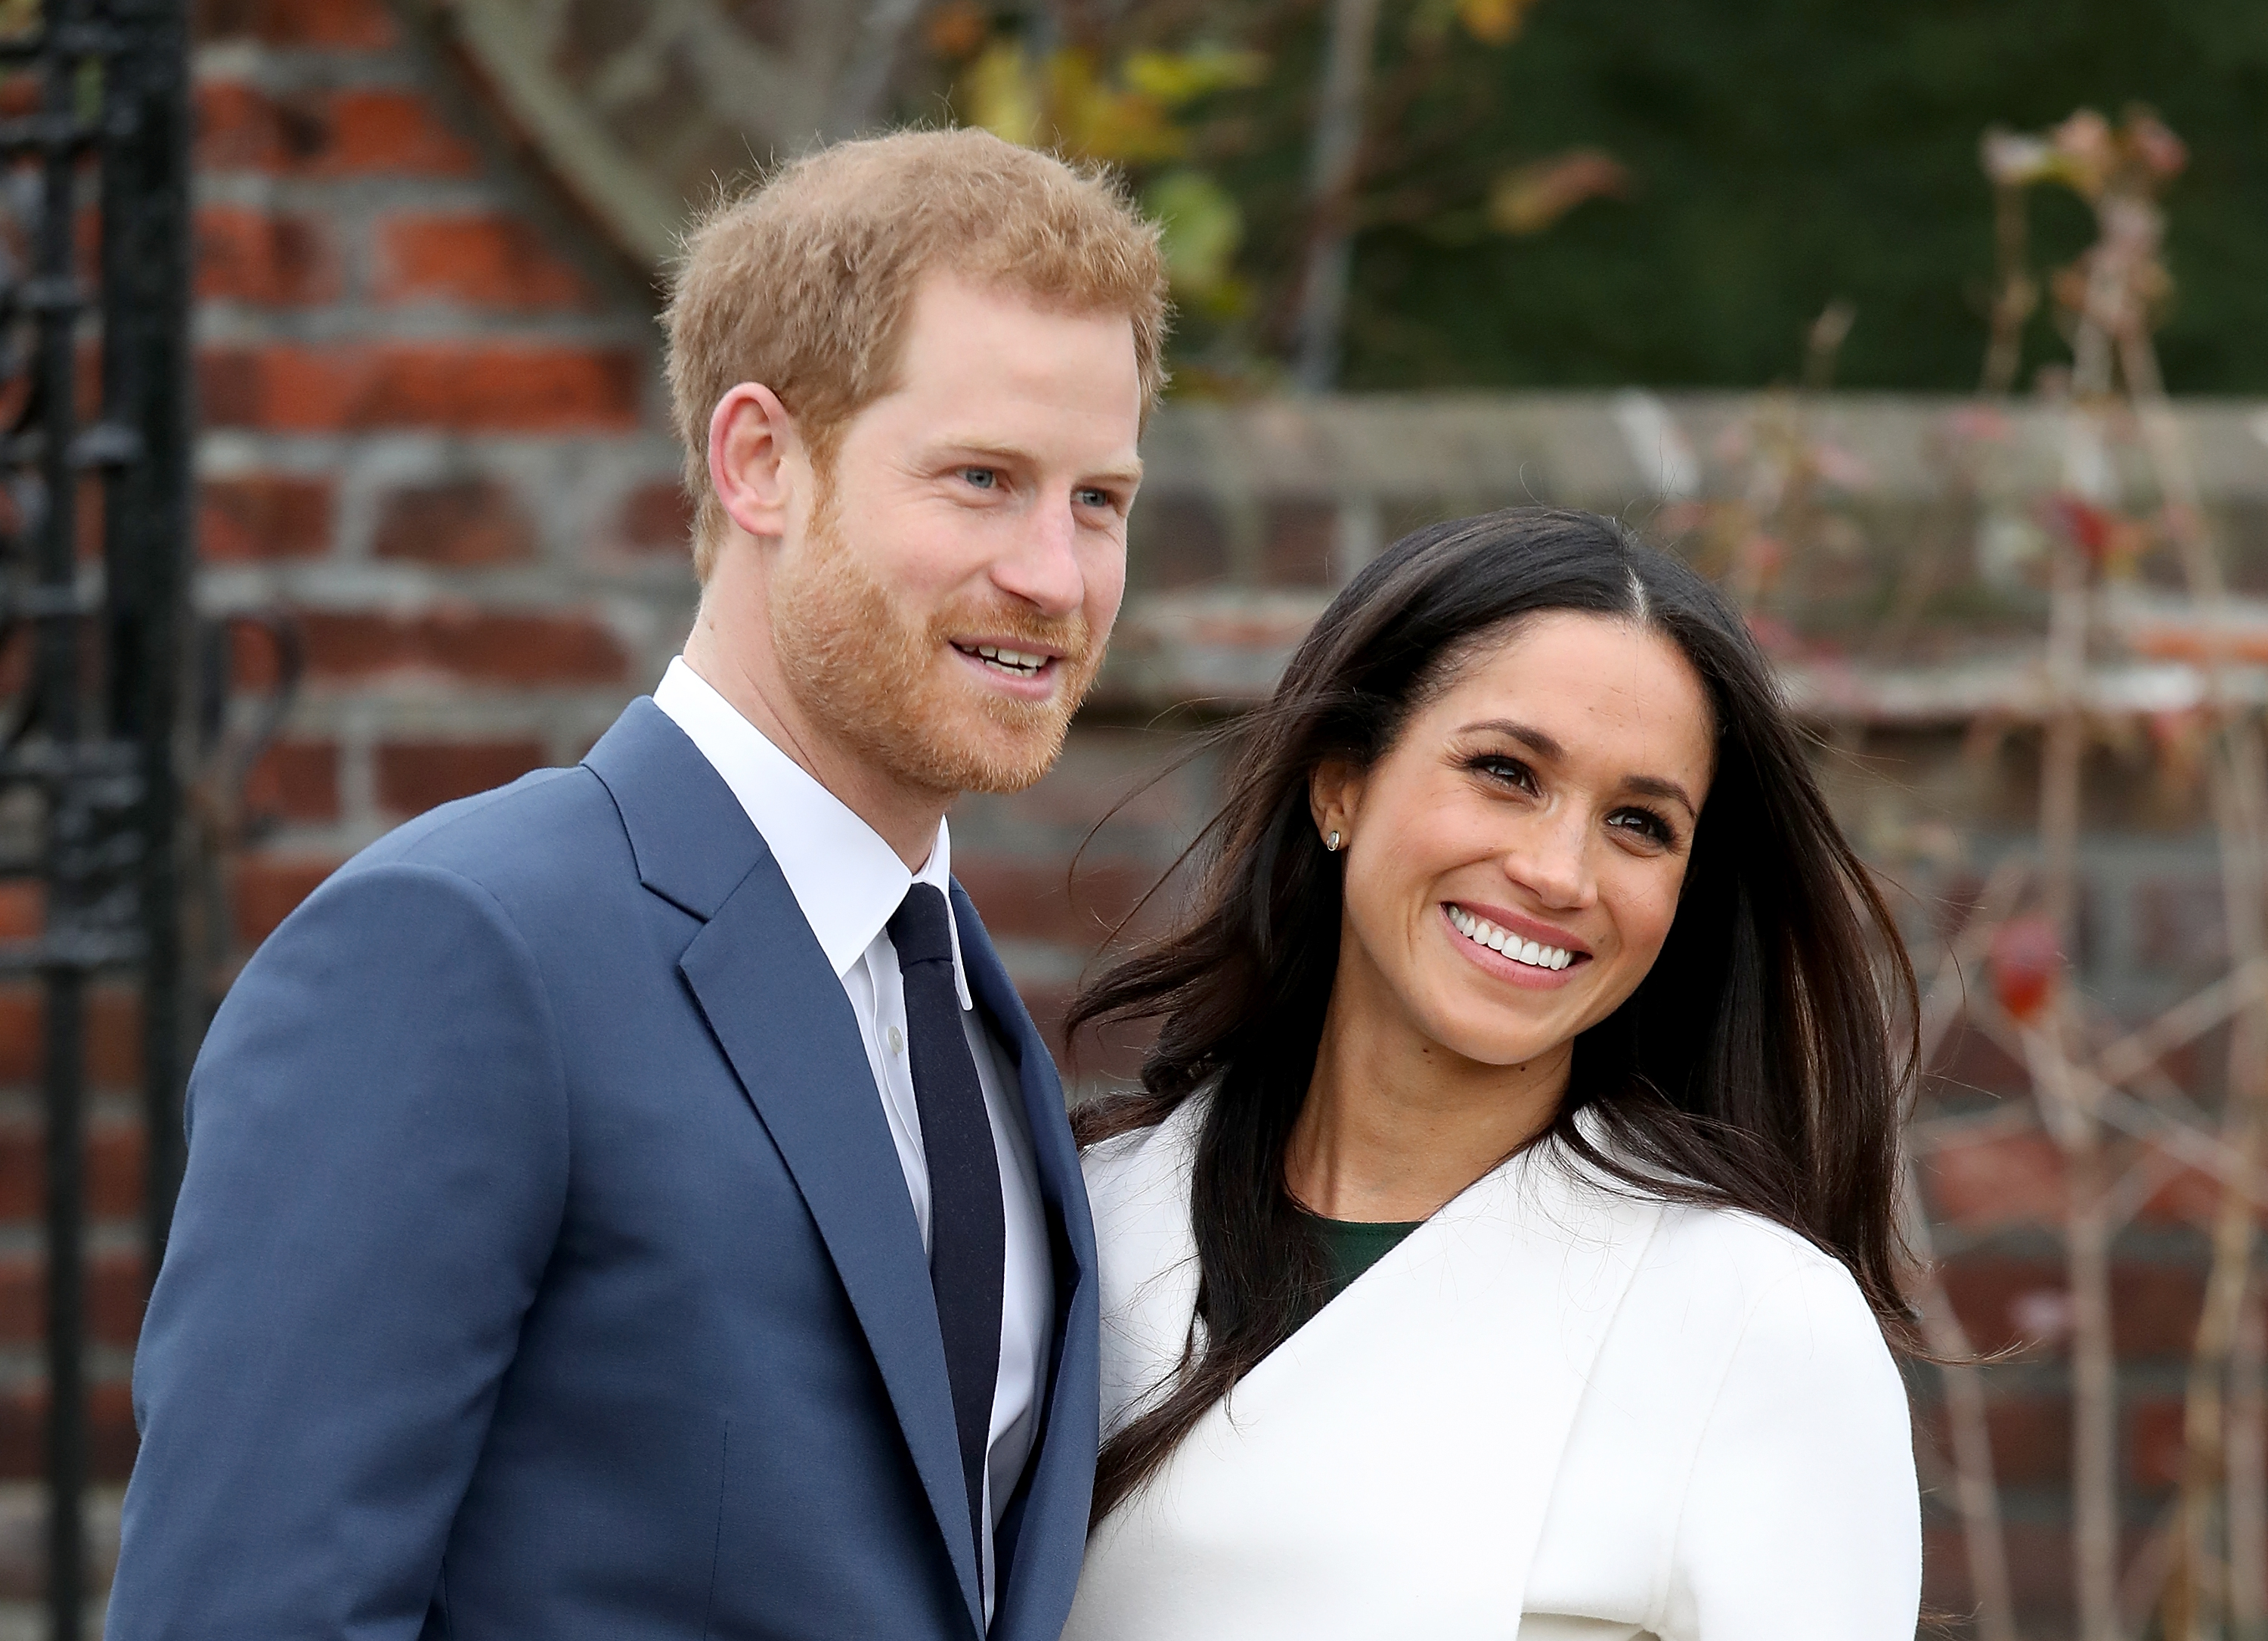 Prince Harry and Meghan Markle (Source: Getty Images)